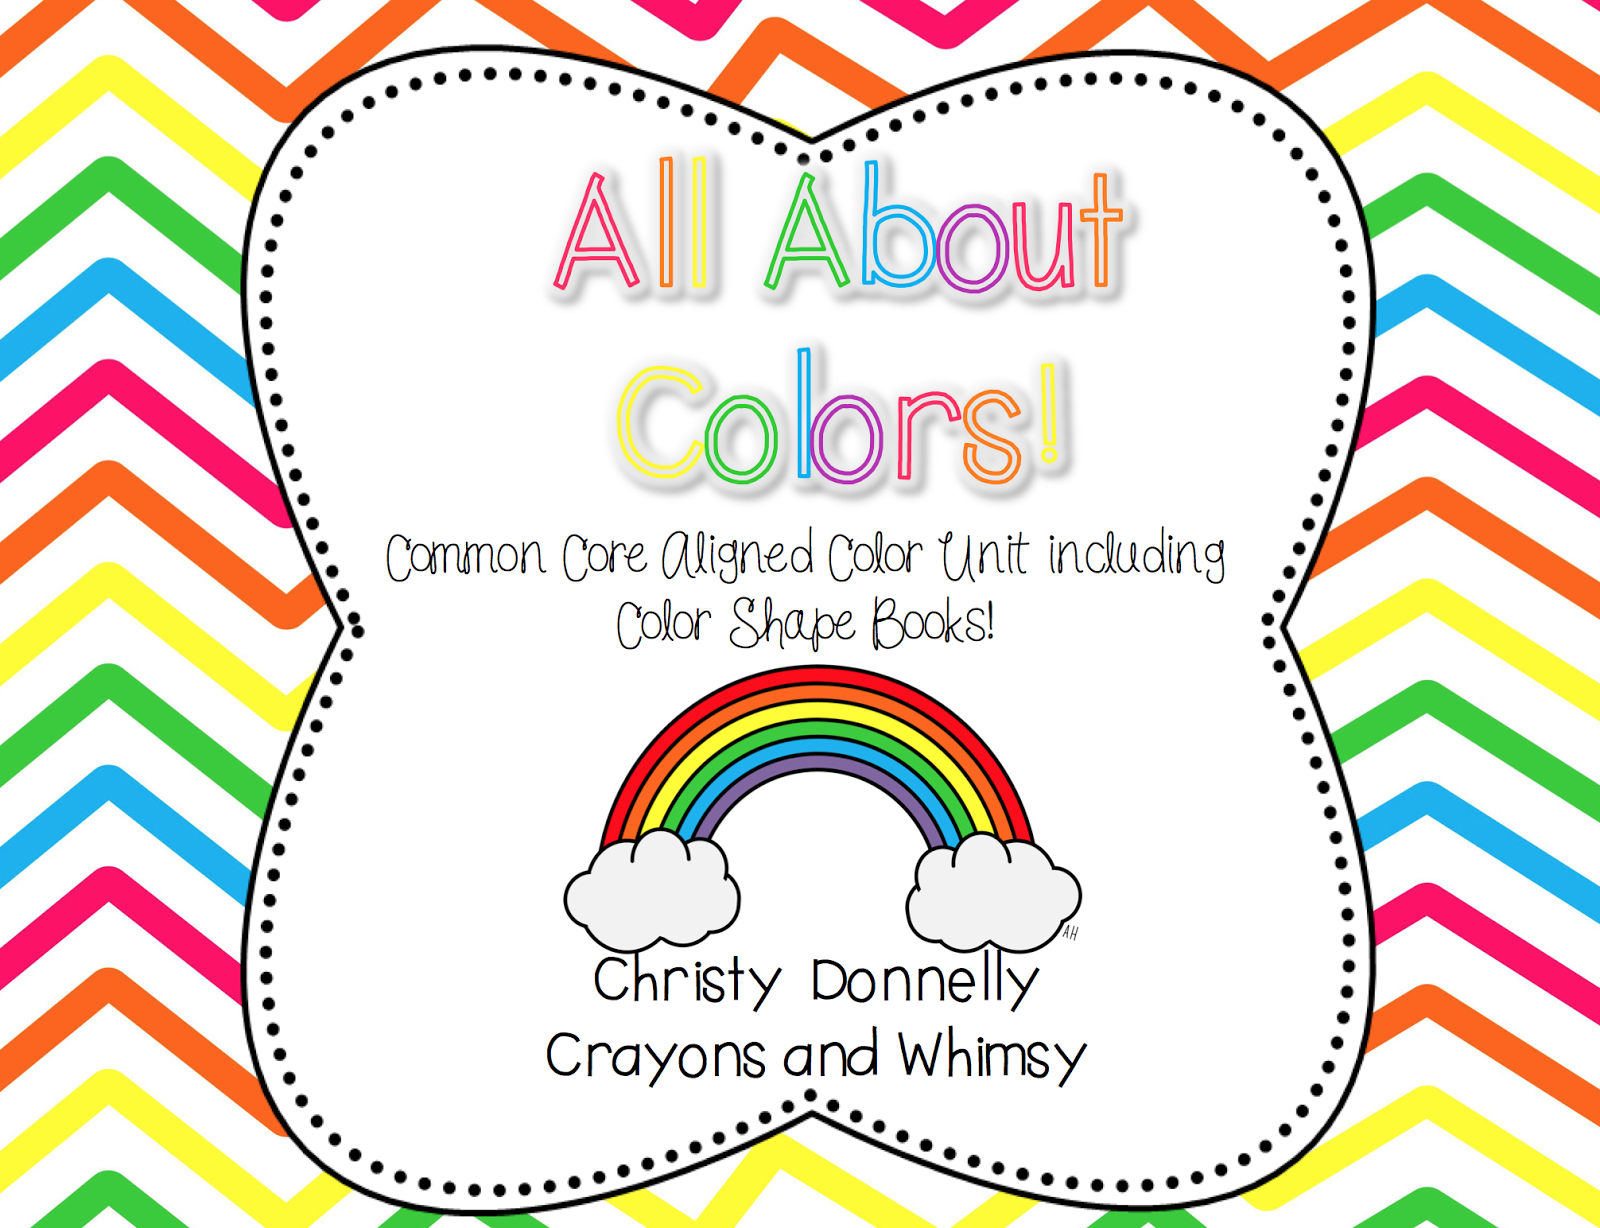 All About Colors Crayons and Whimsy Unit